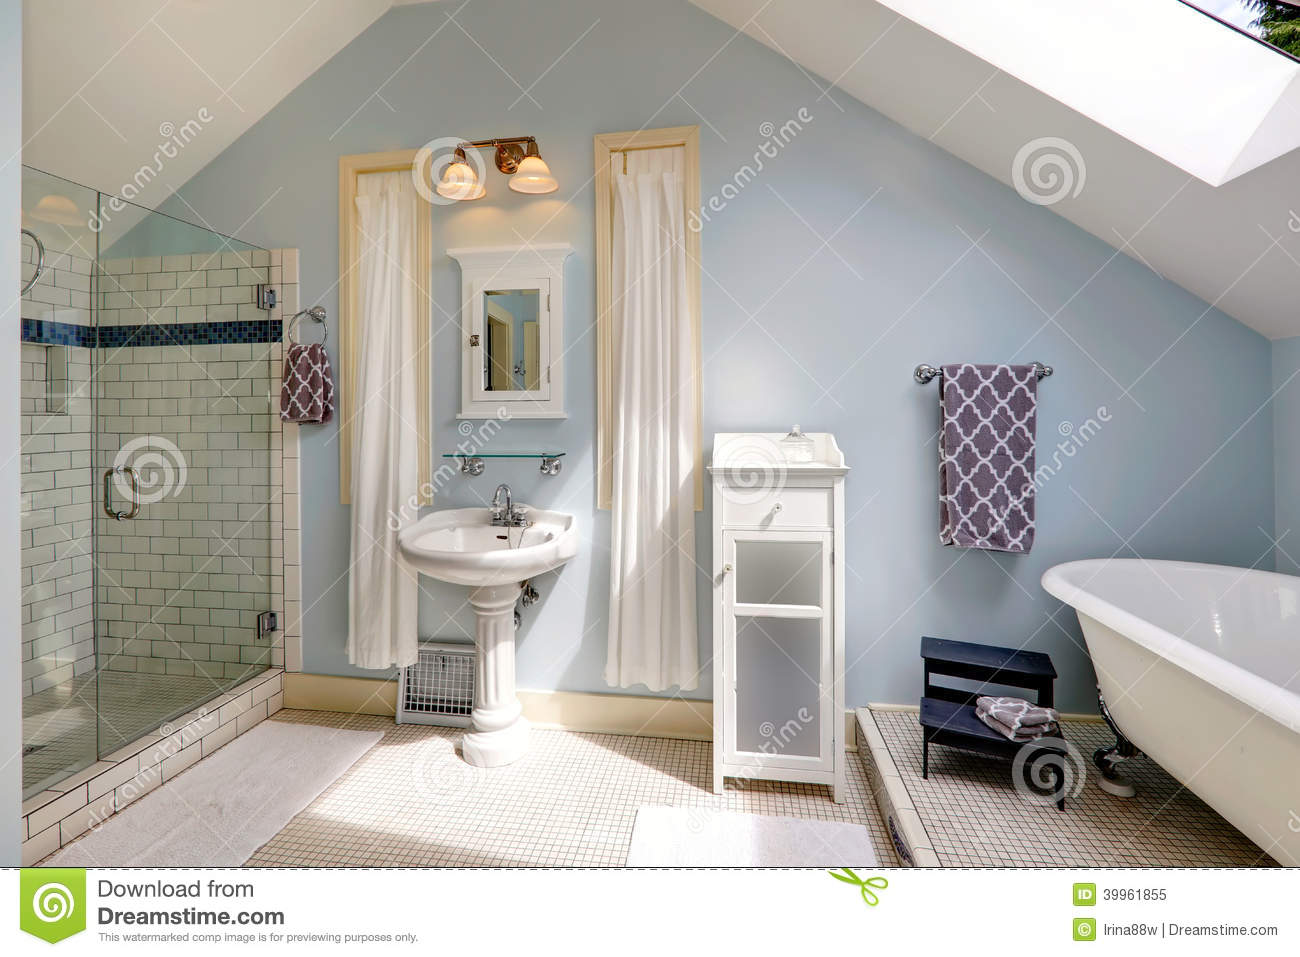 salle de bains de velux avec la baignoire antique photo. Black Bedroom Furniture Sets. Home Design Ideas